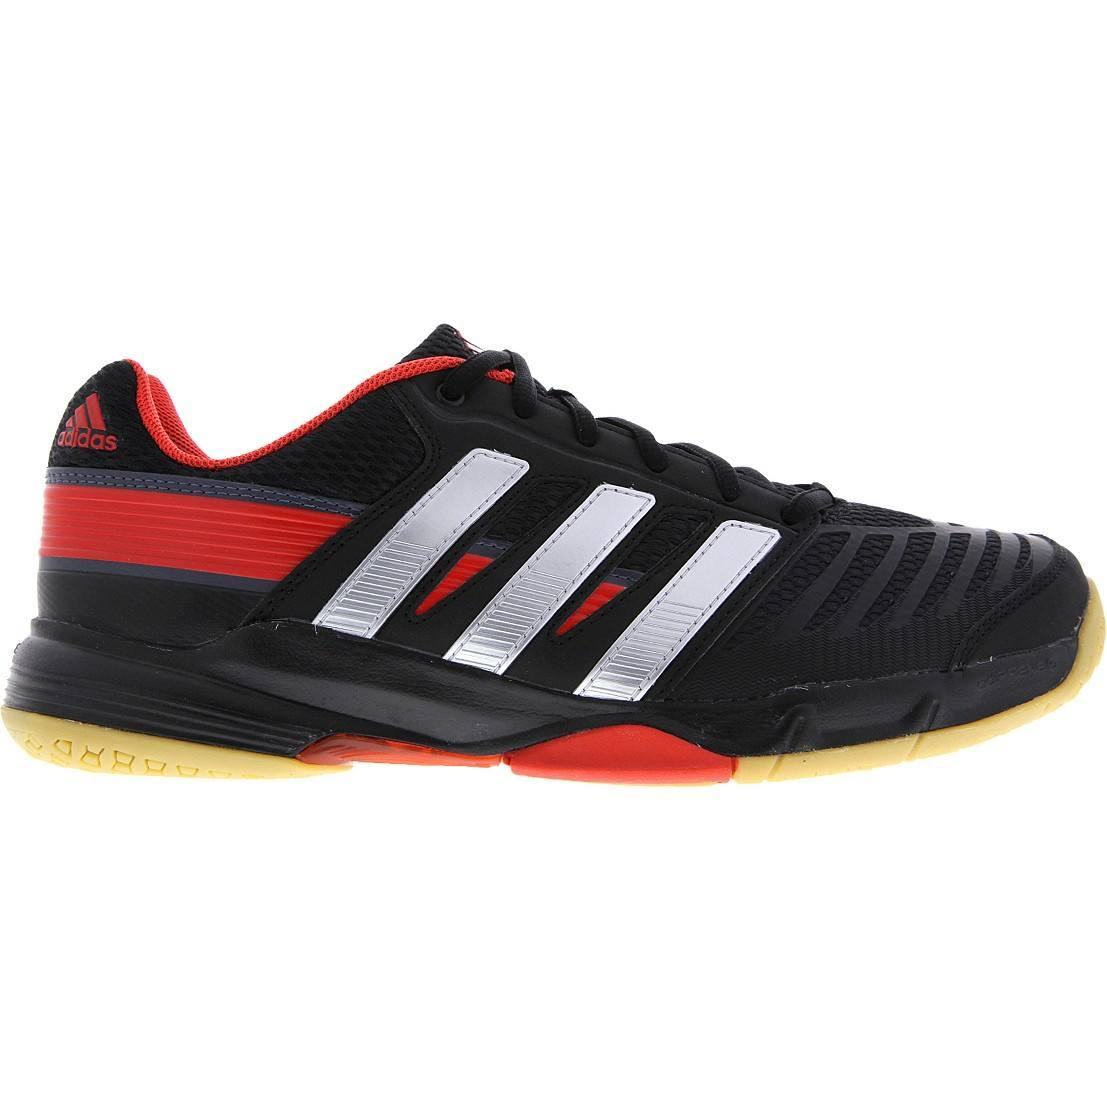 Adidas Court Stabil 10.1 - Black